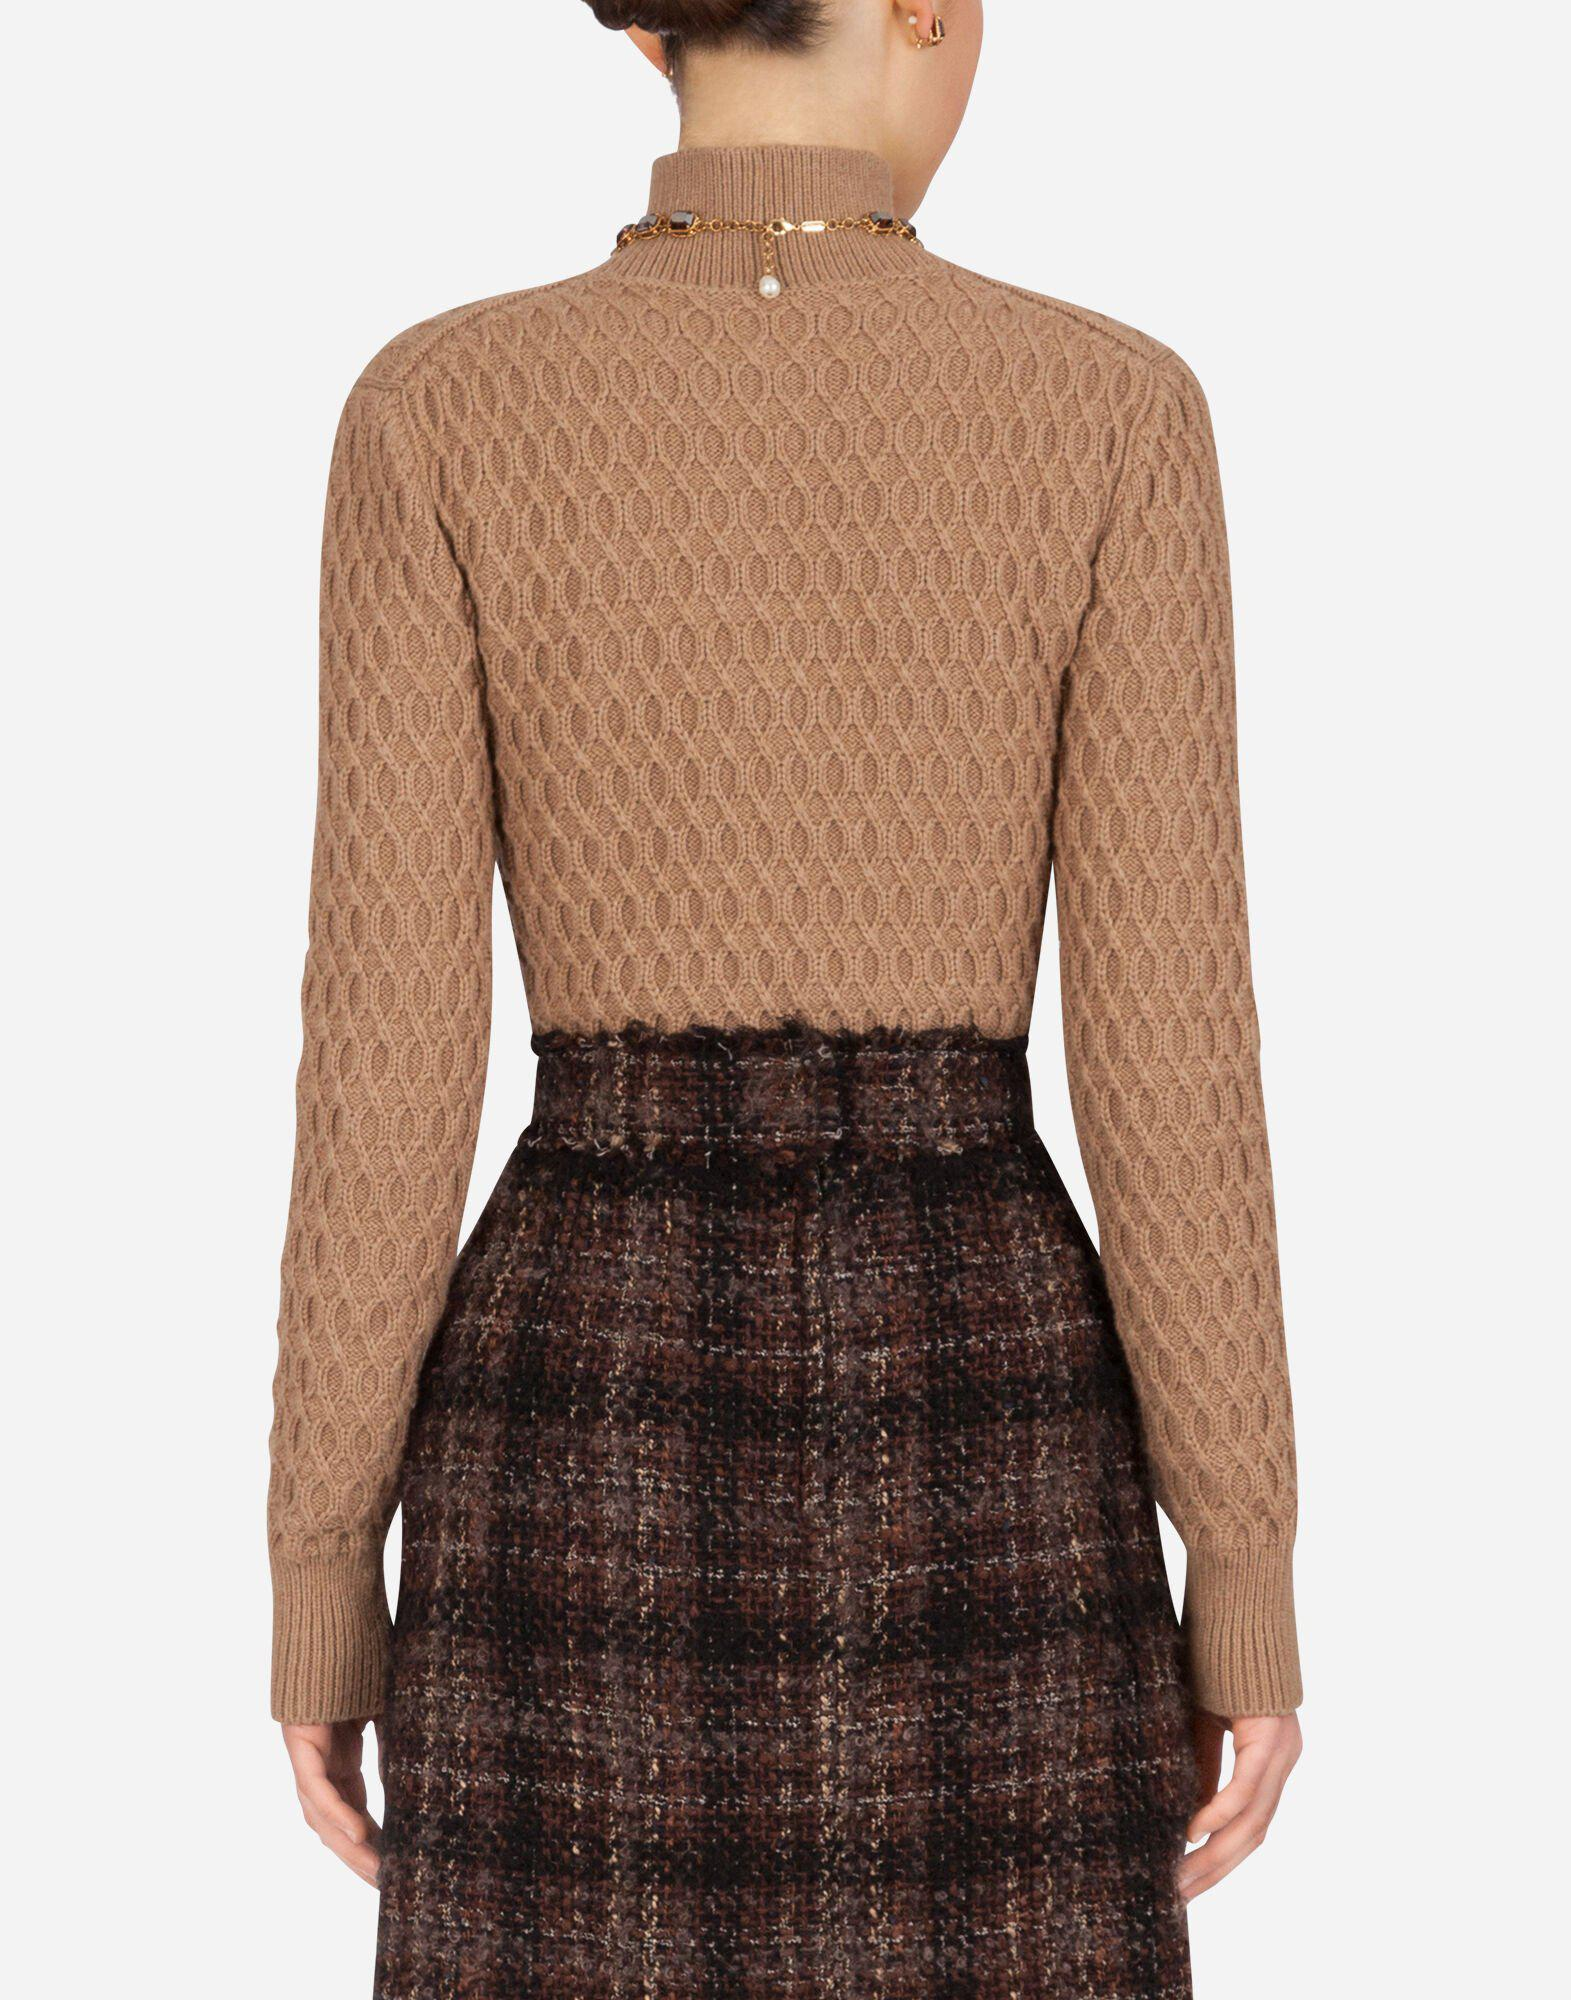 High-neck sweater in camel with rhombus stitch 1